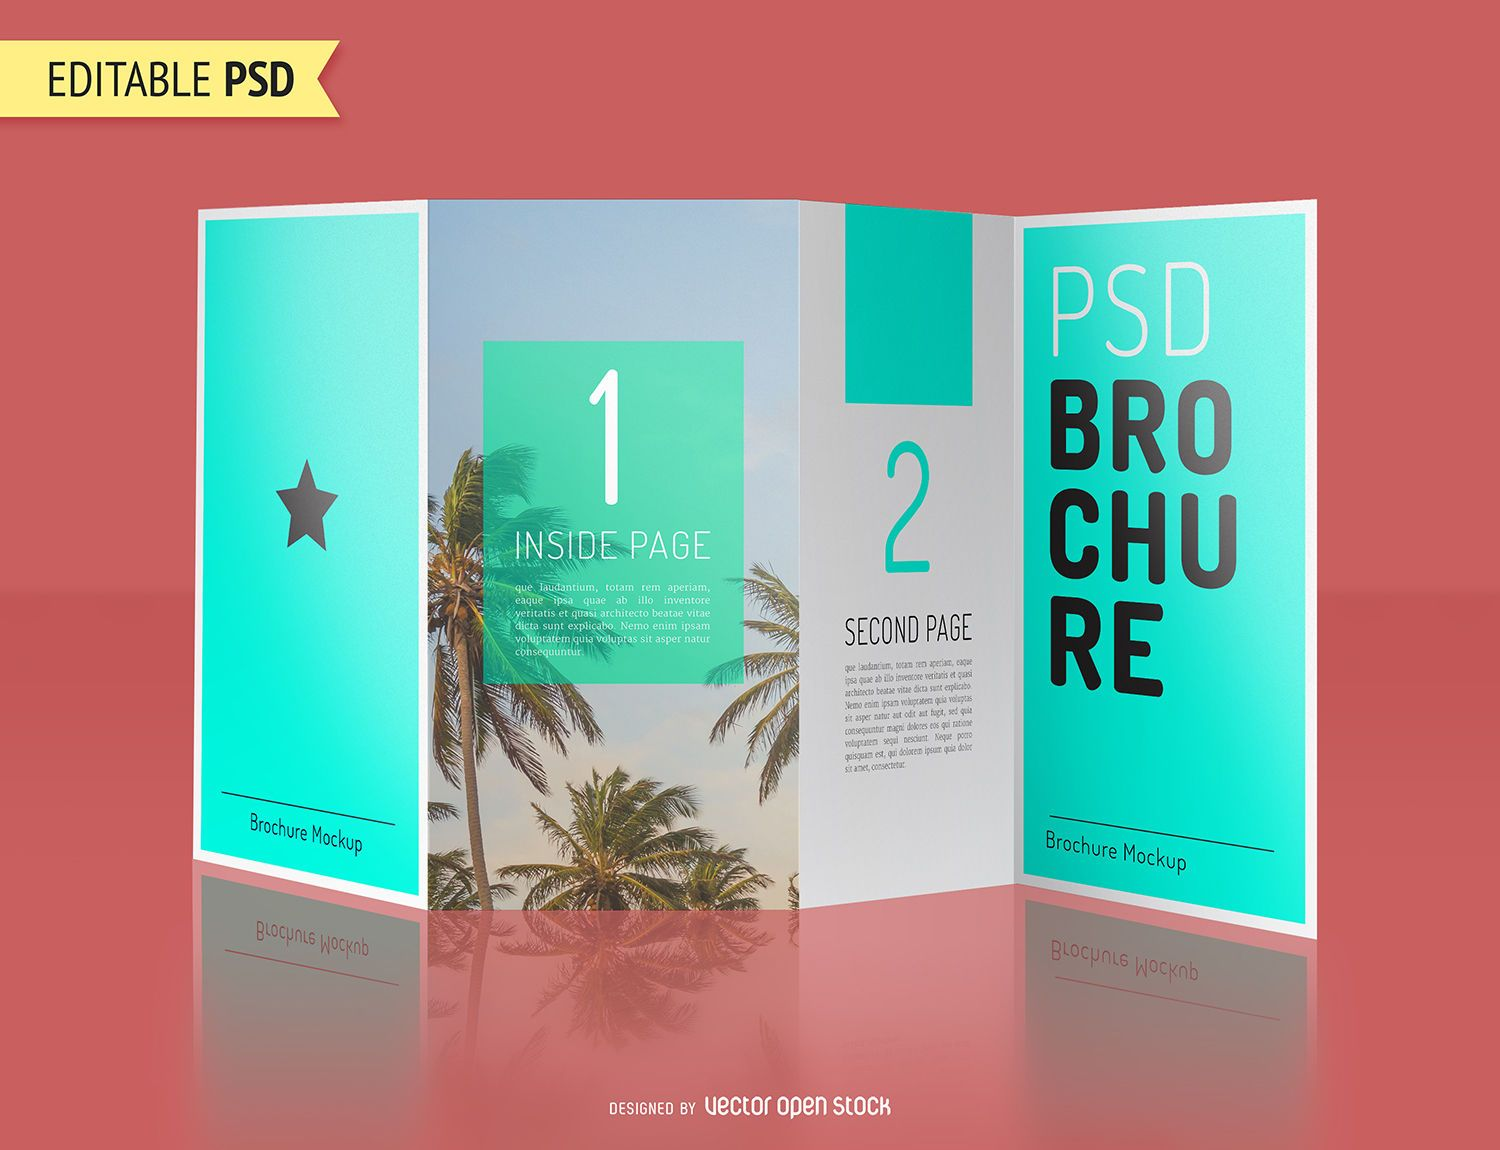 Brochure mockup template psd psd download for Psd template brochure